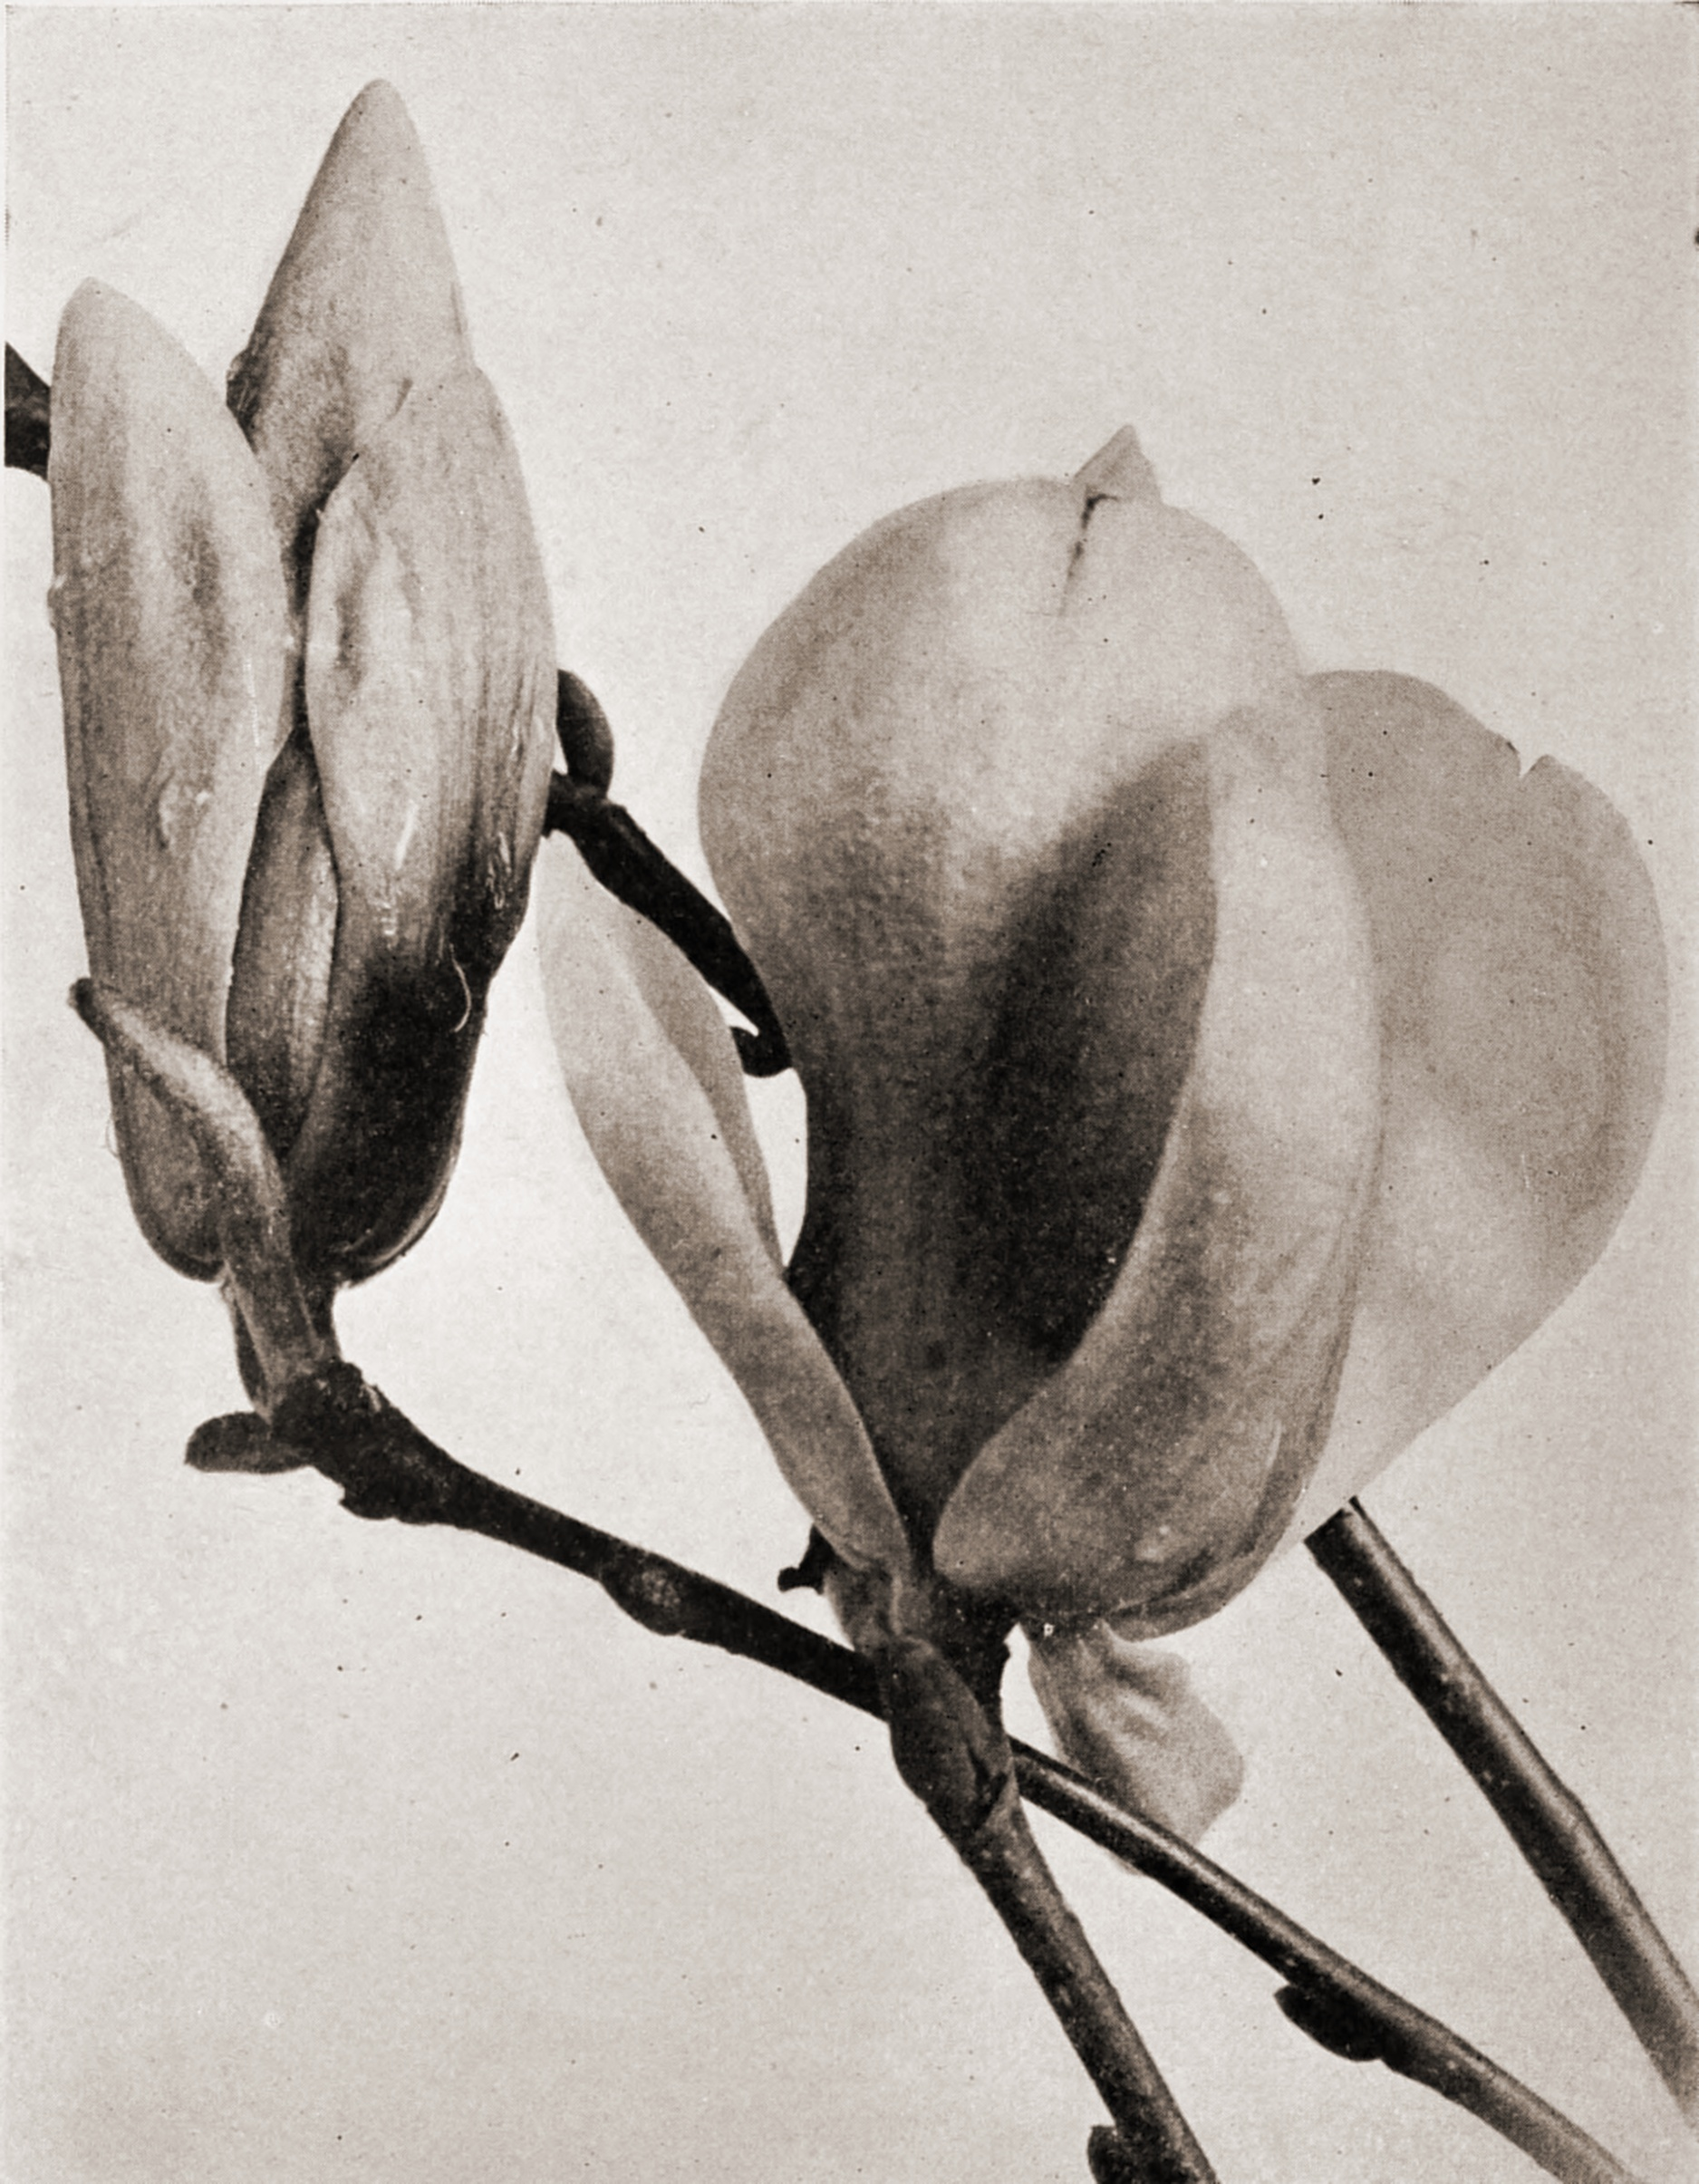 Magnolia Buds by R. W. Shufeldt about 1923